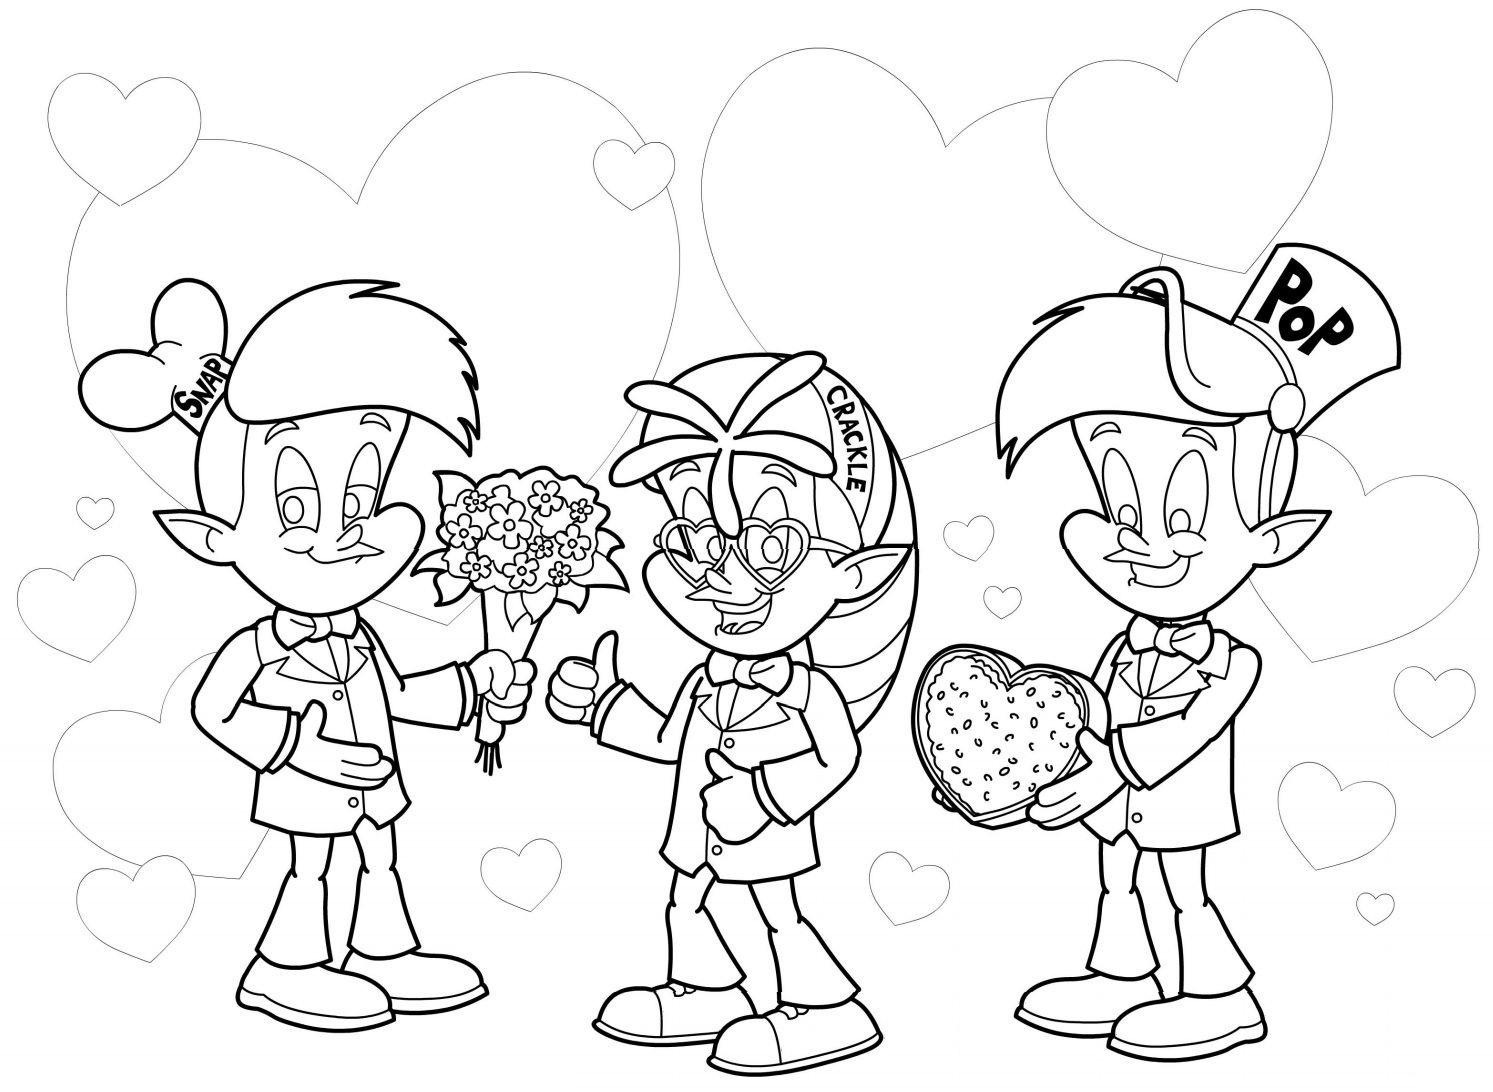 Rice Krispies Characters Snap Crackle Pop Coloring Books